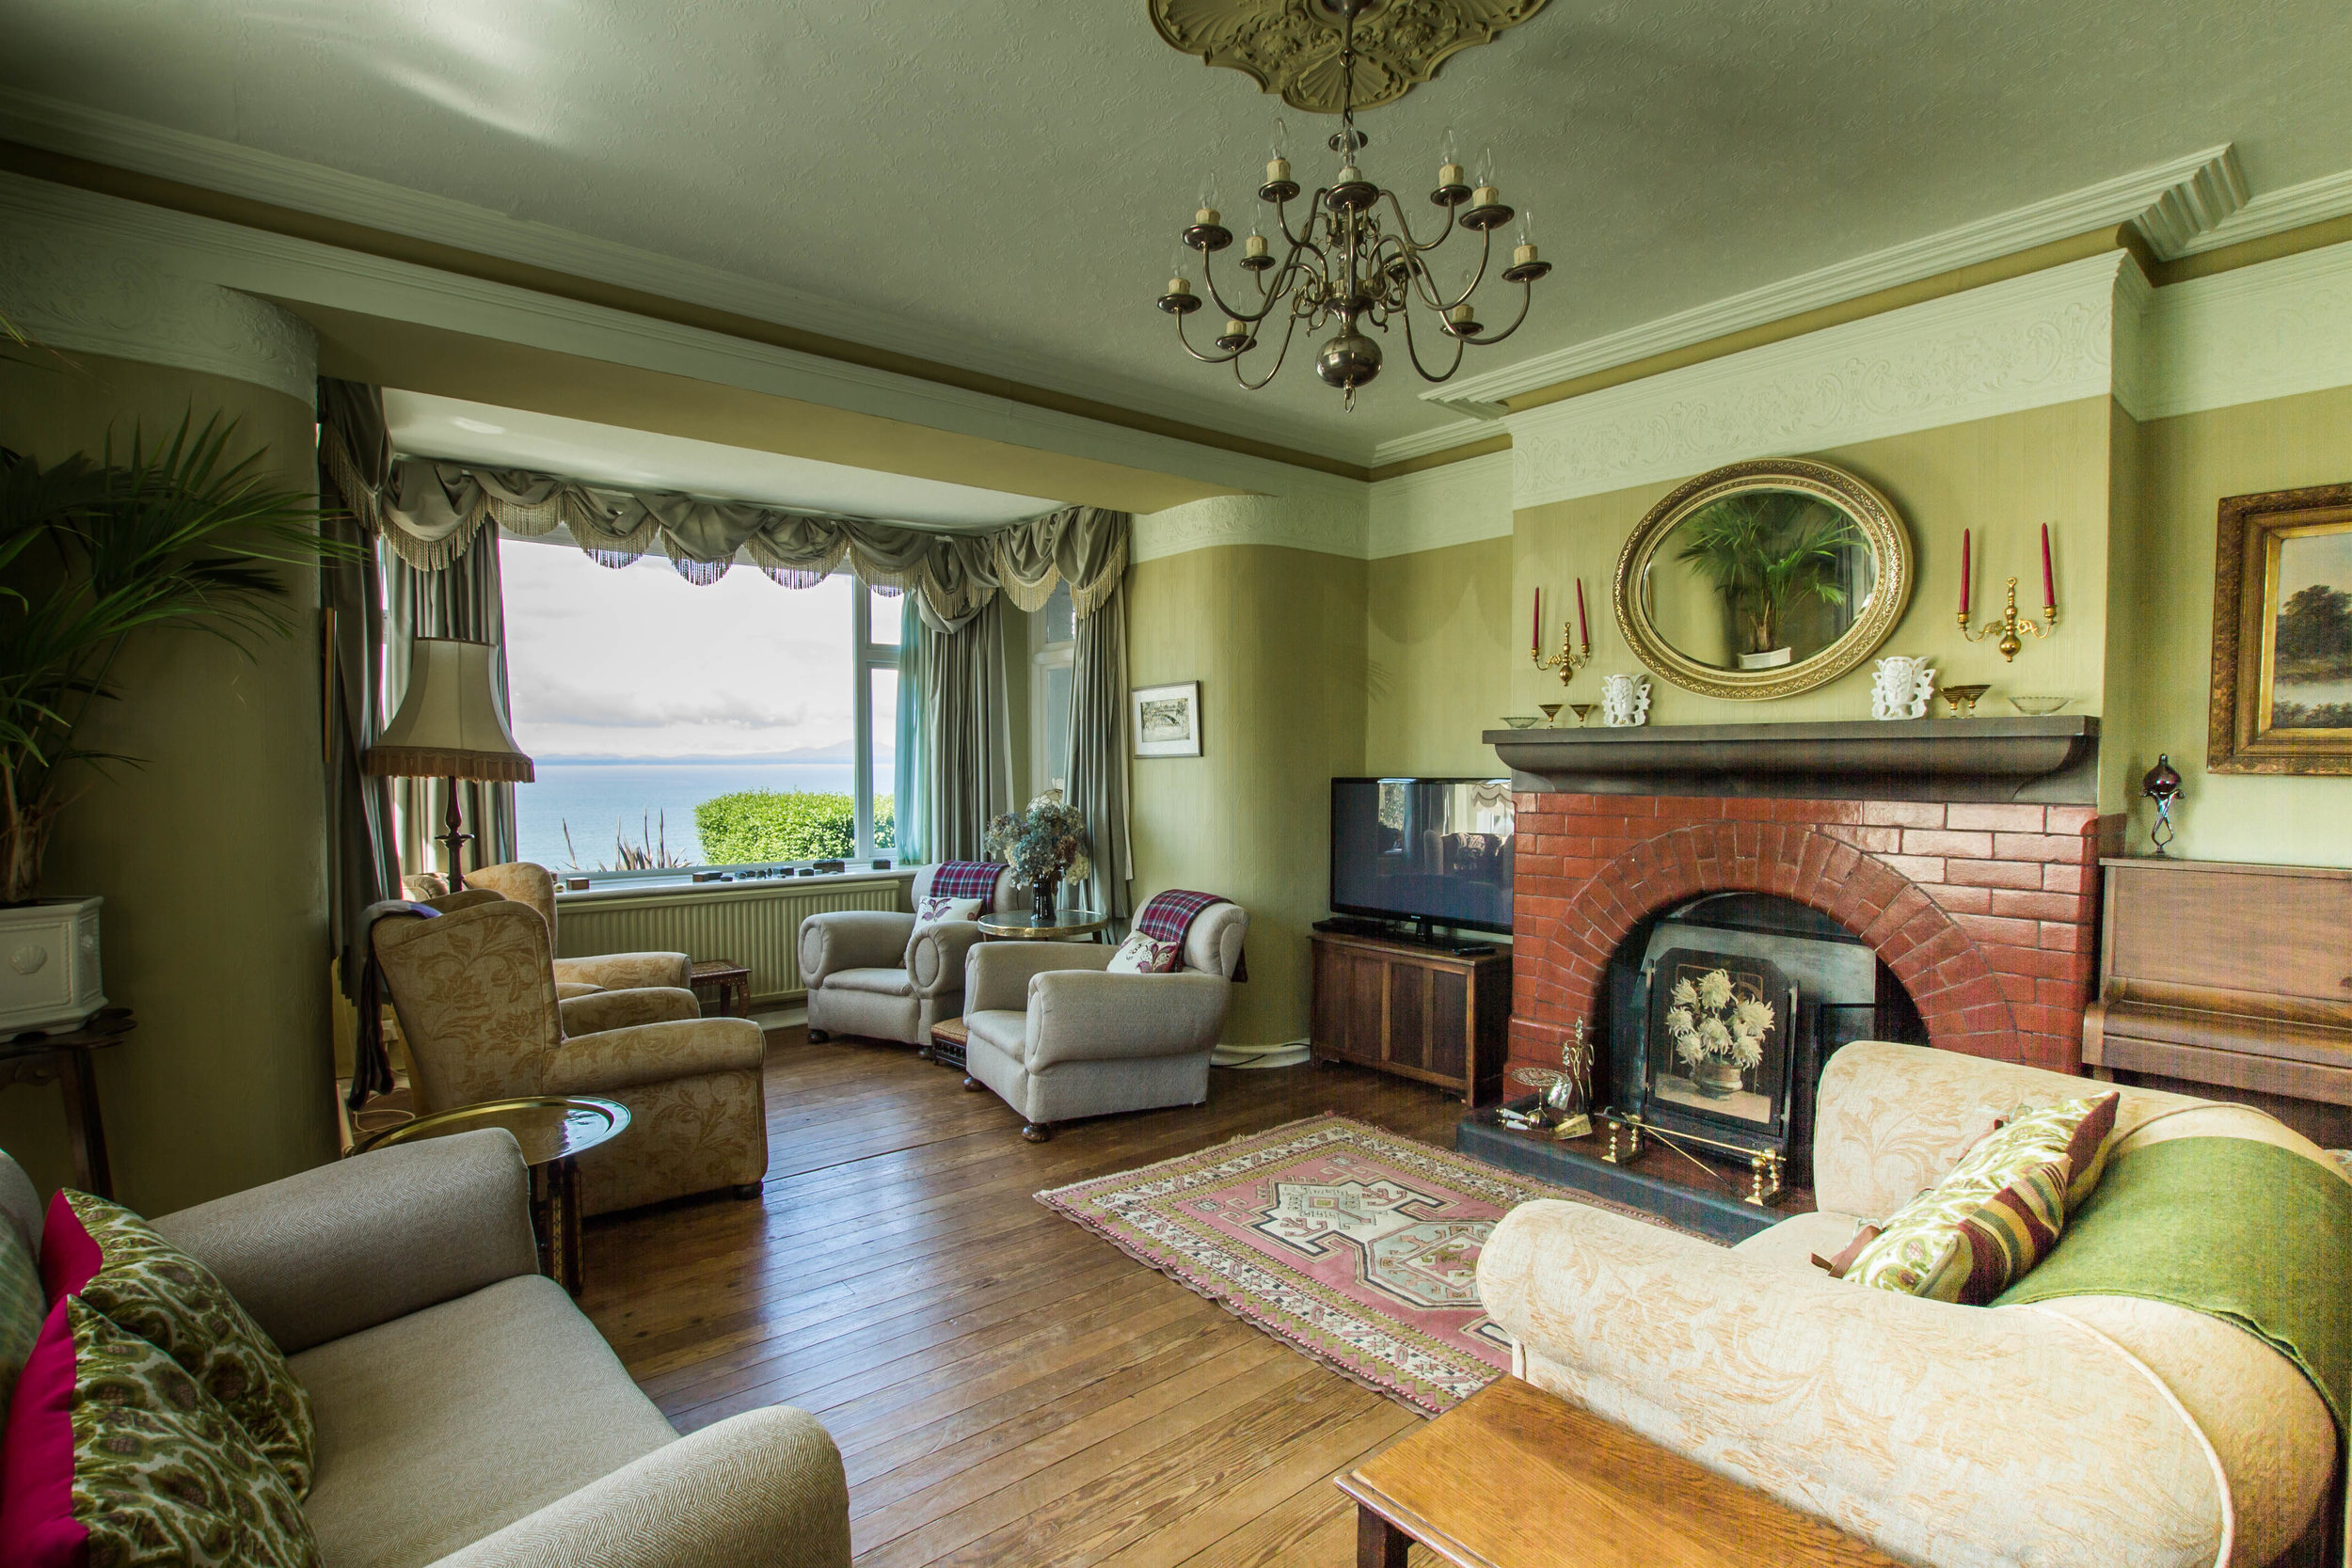 The large living room at Hafod Wen